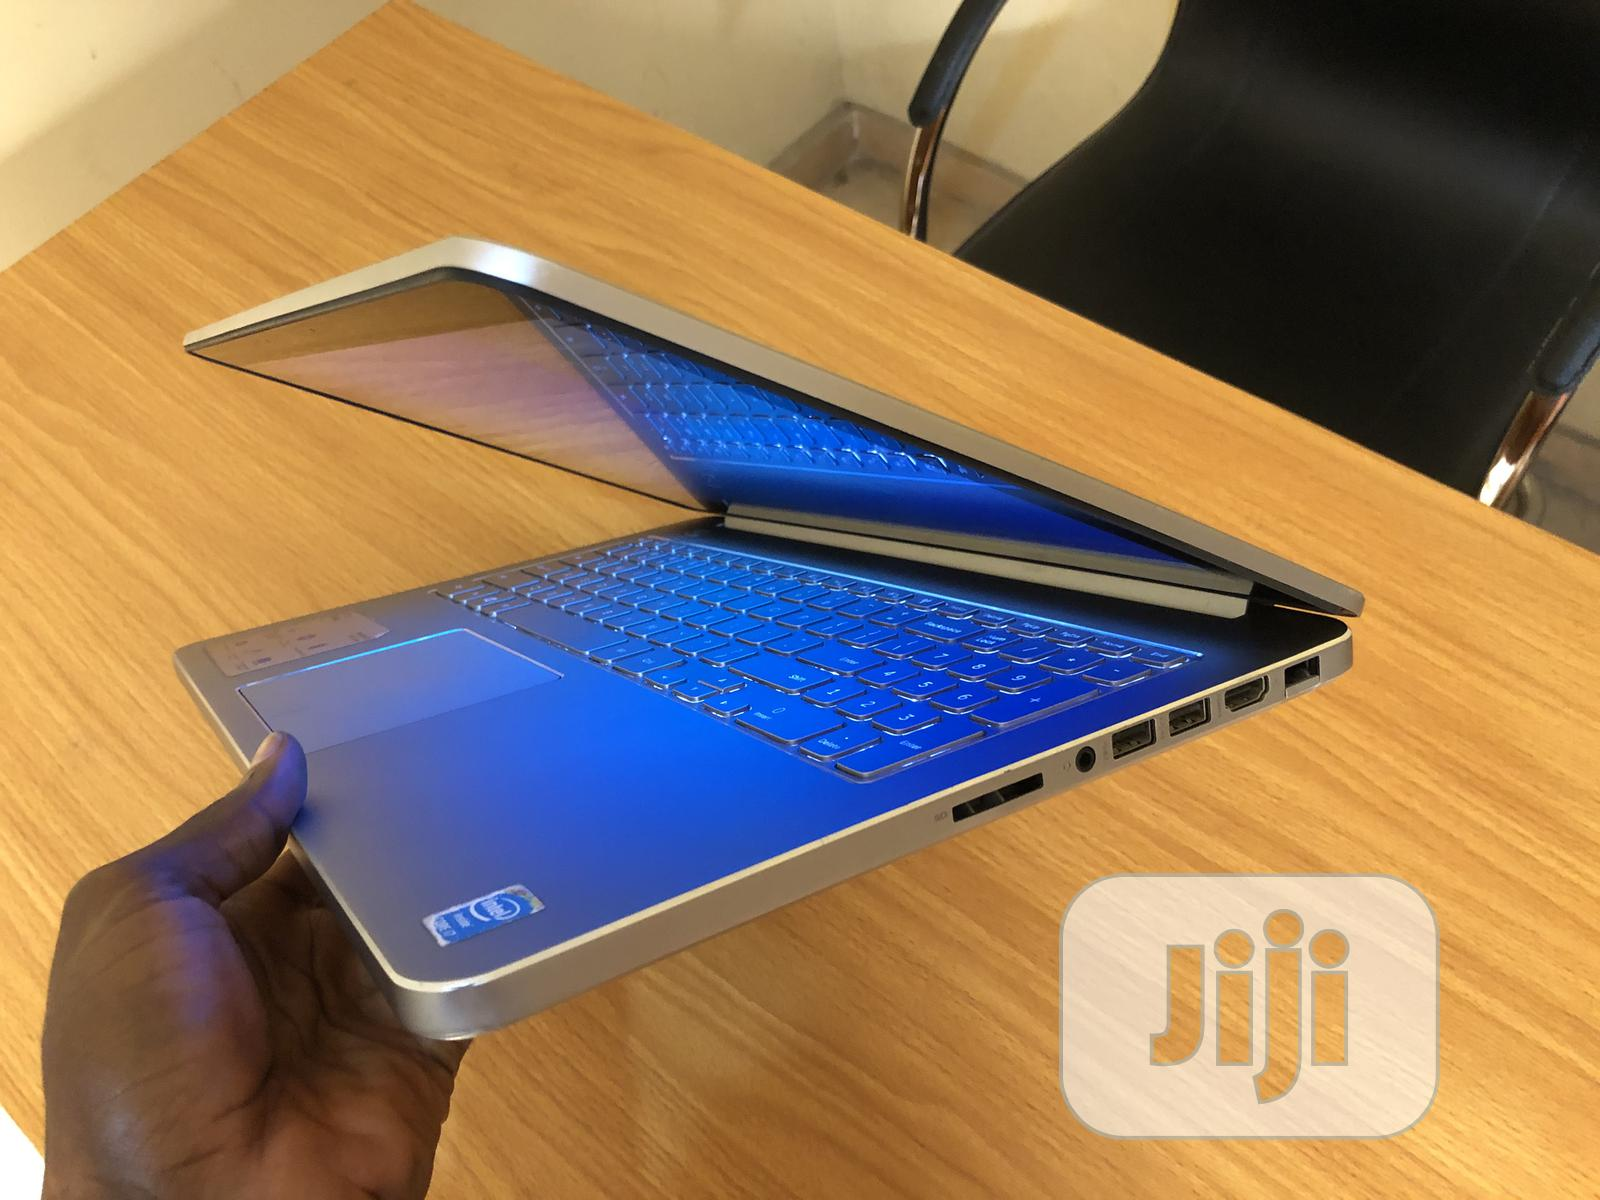 Archive: Laptop Dell Inspiron 15 7537 8GB Intel Core I7 HDD 1T